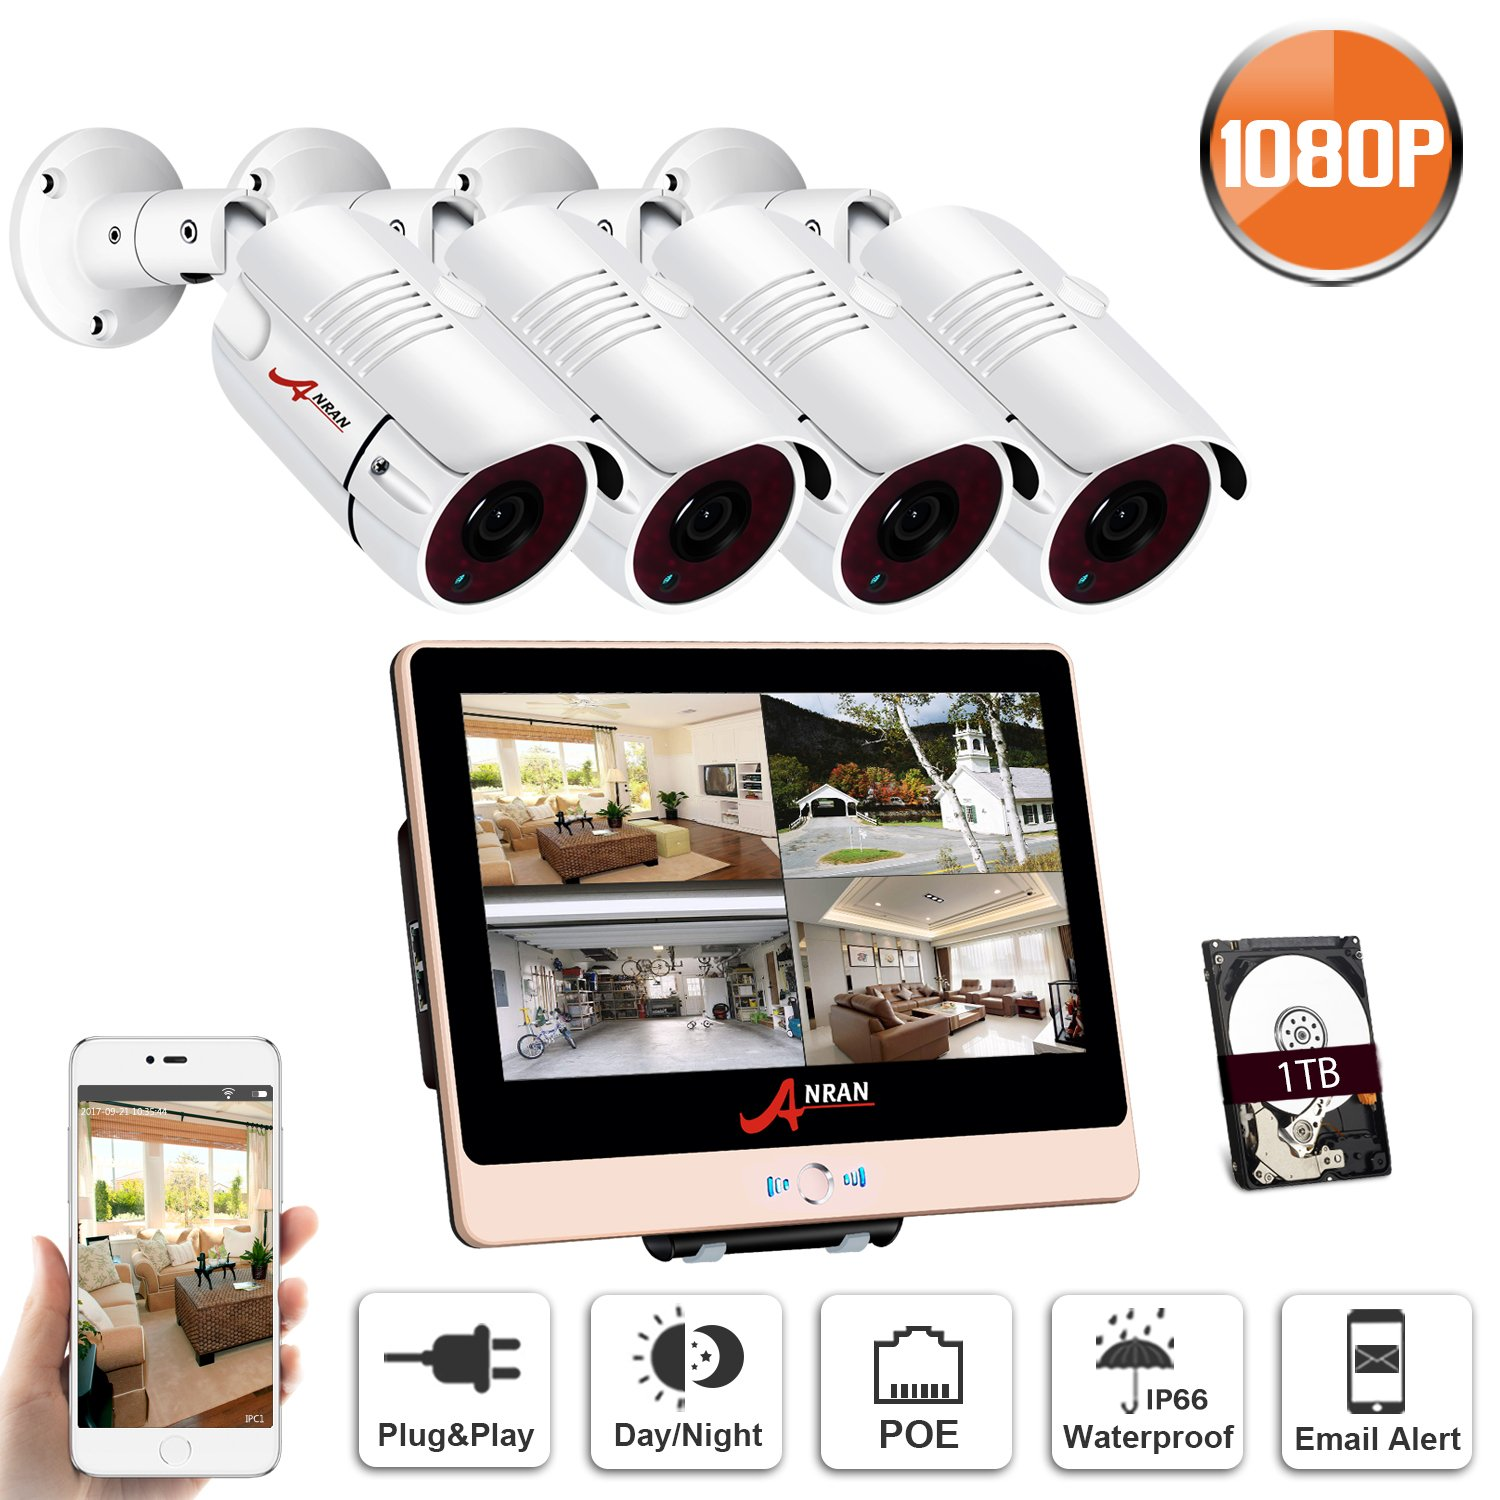 ANRAN 8Channel PoE Home Security Camera System 1080P with 1TB Hard Drive 4 Pack Outdoor Surveillance Cameras 12inch LCD Monitor NVR Plug and Play Free Remote Viewing Motion Detection SWINWAY by ANRAN